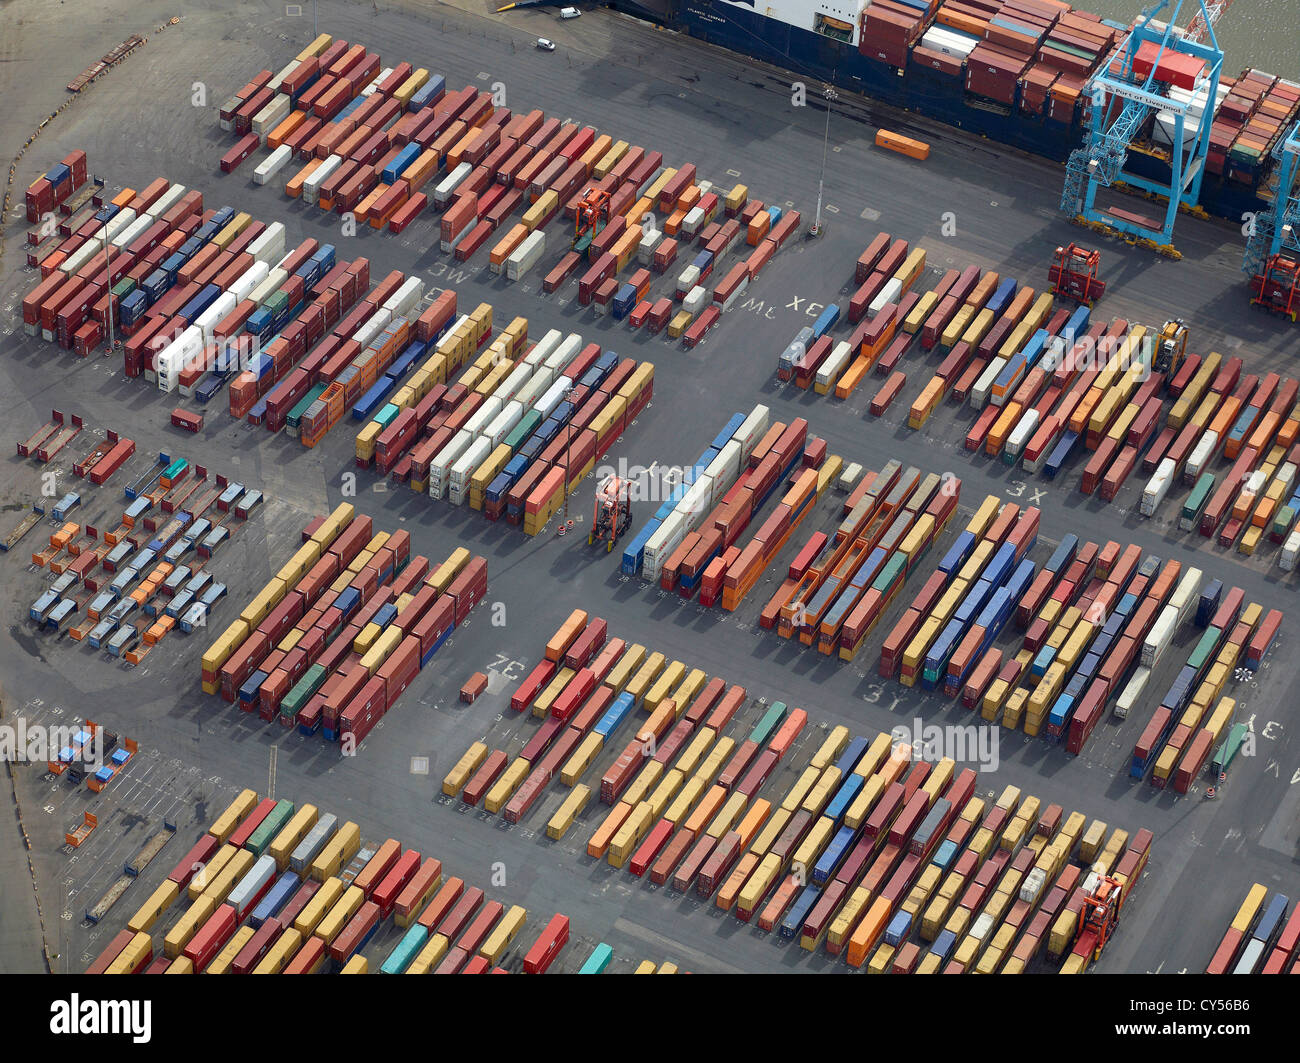 Containers on Liverpool Docks, Port of Liverpool, Merseyside, North West England, UK - Stock Image